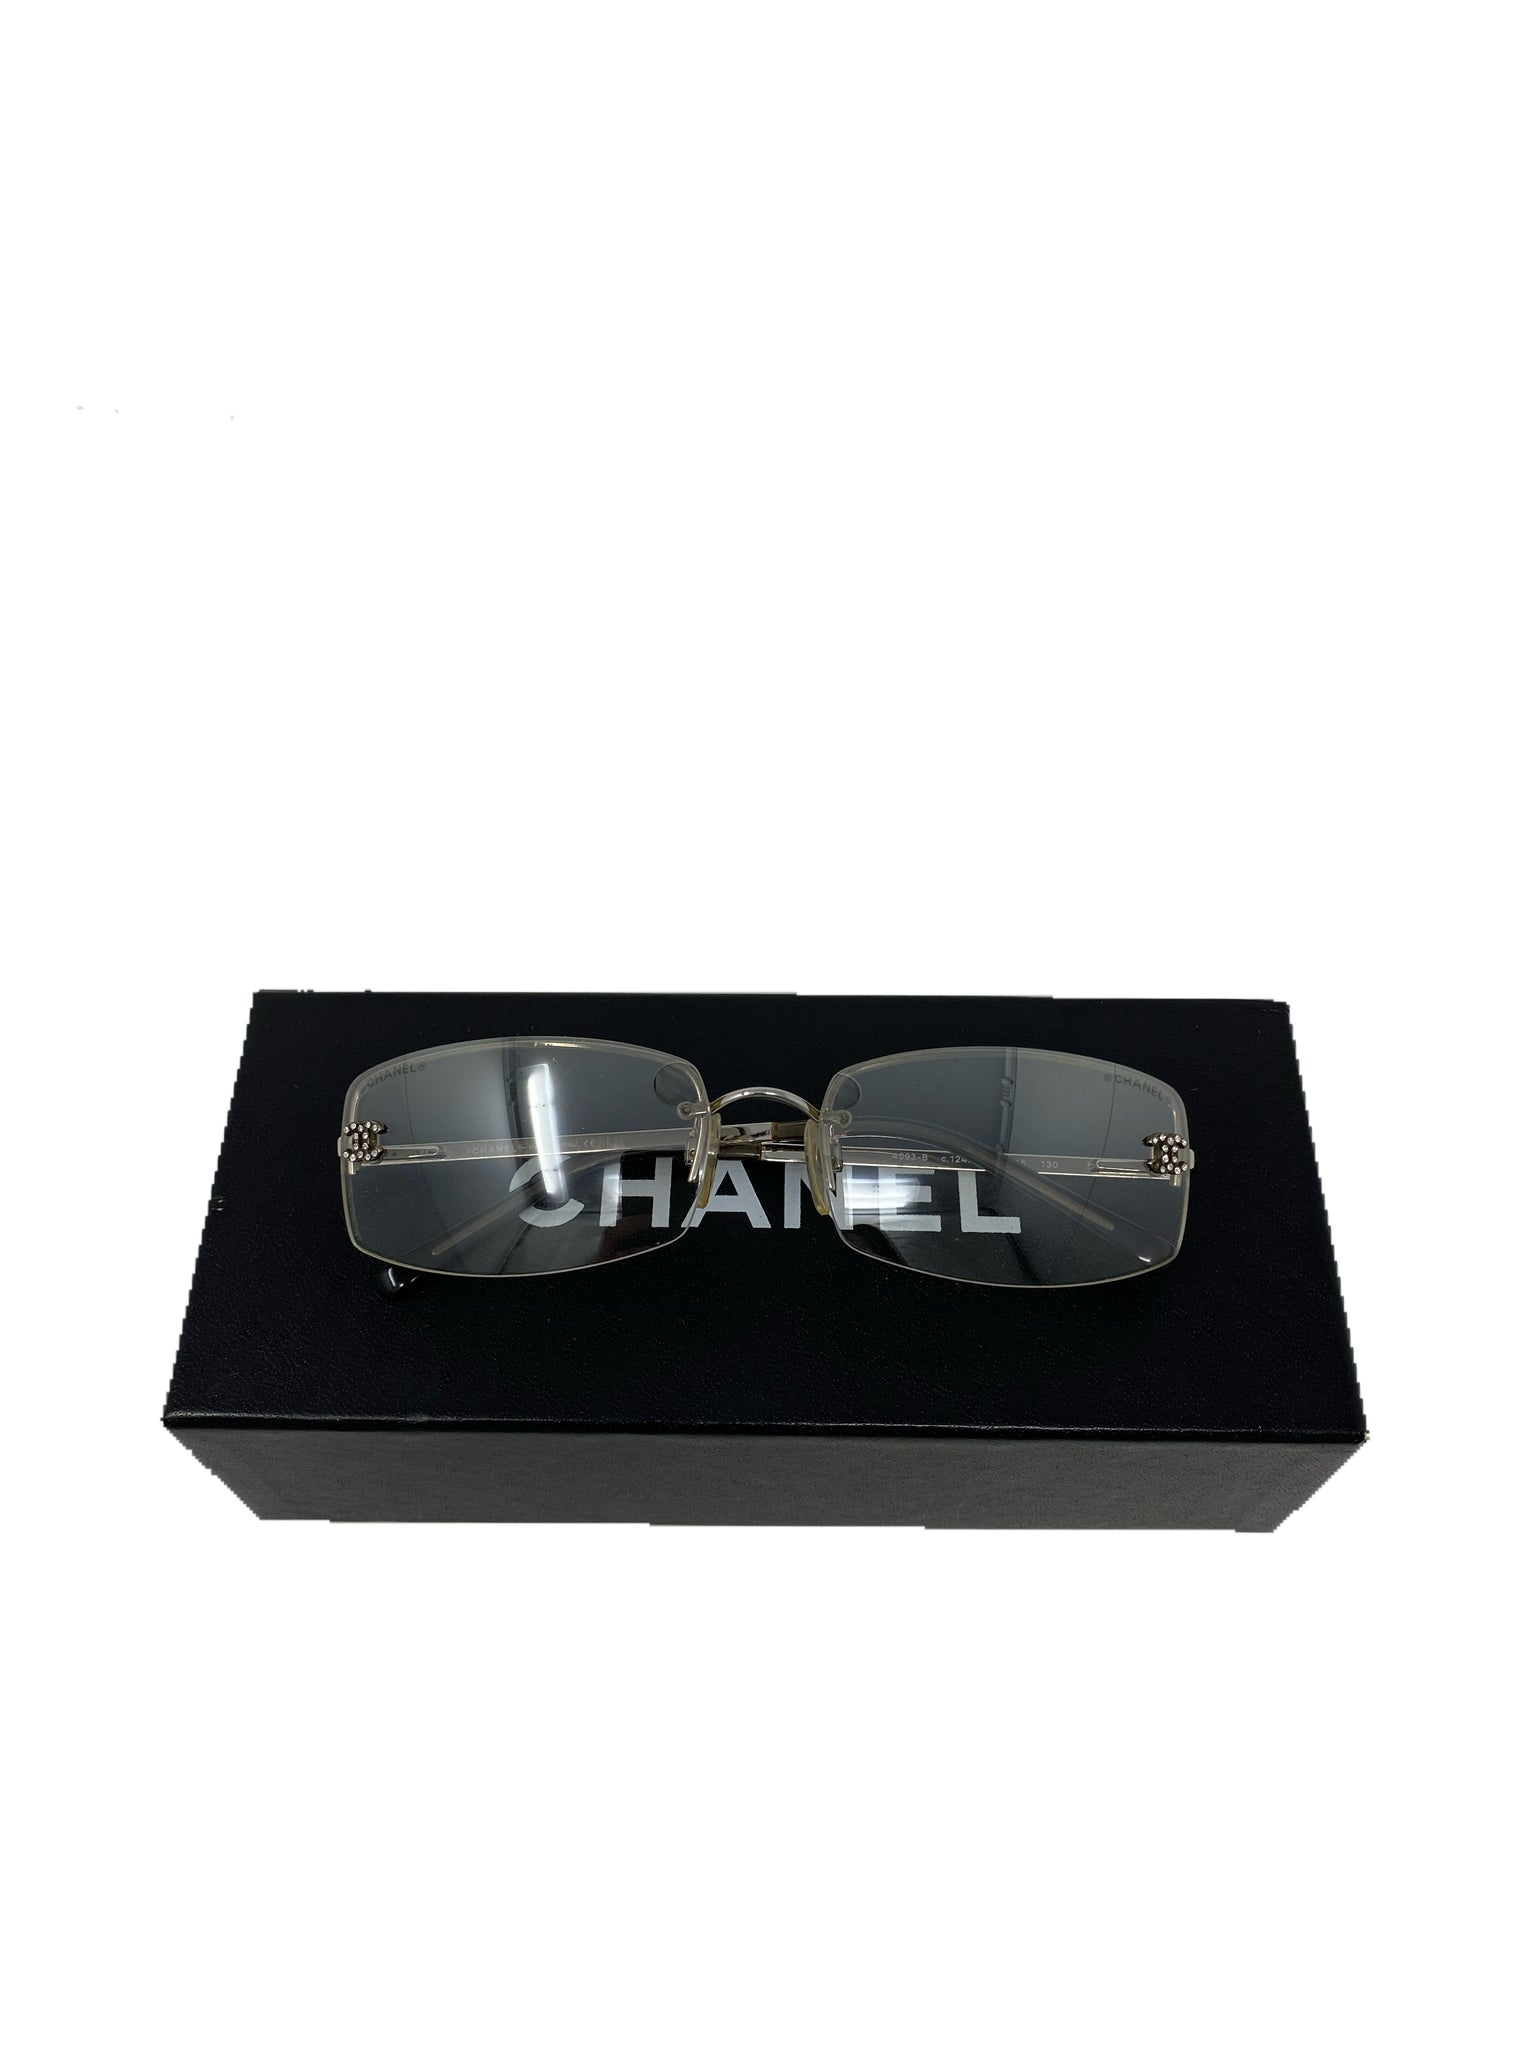 Chanel Vintage Rimless Sunglasses with CC rhinestone detail